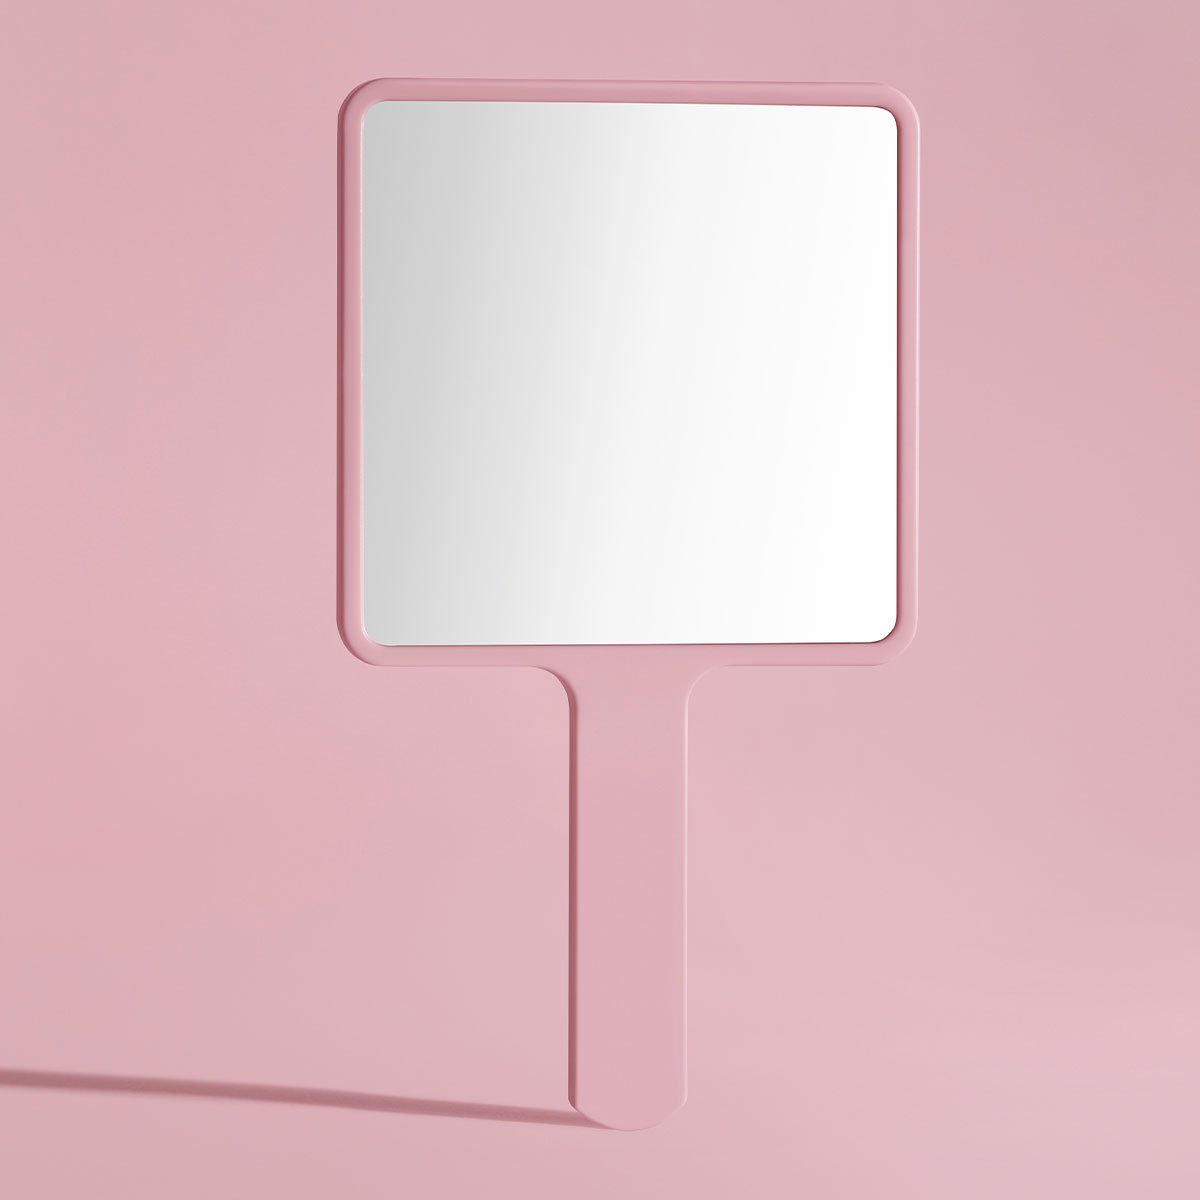 Kylie Skin mirror with logo